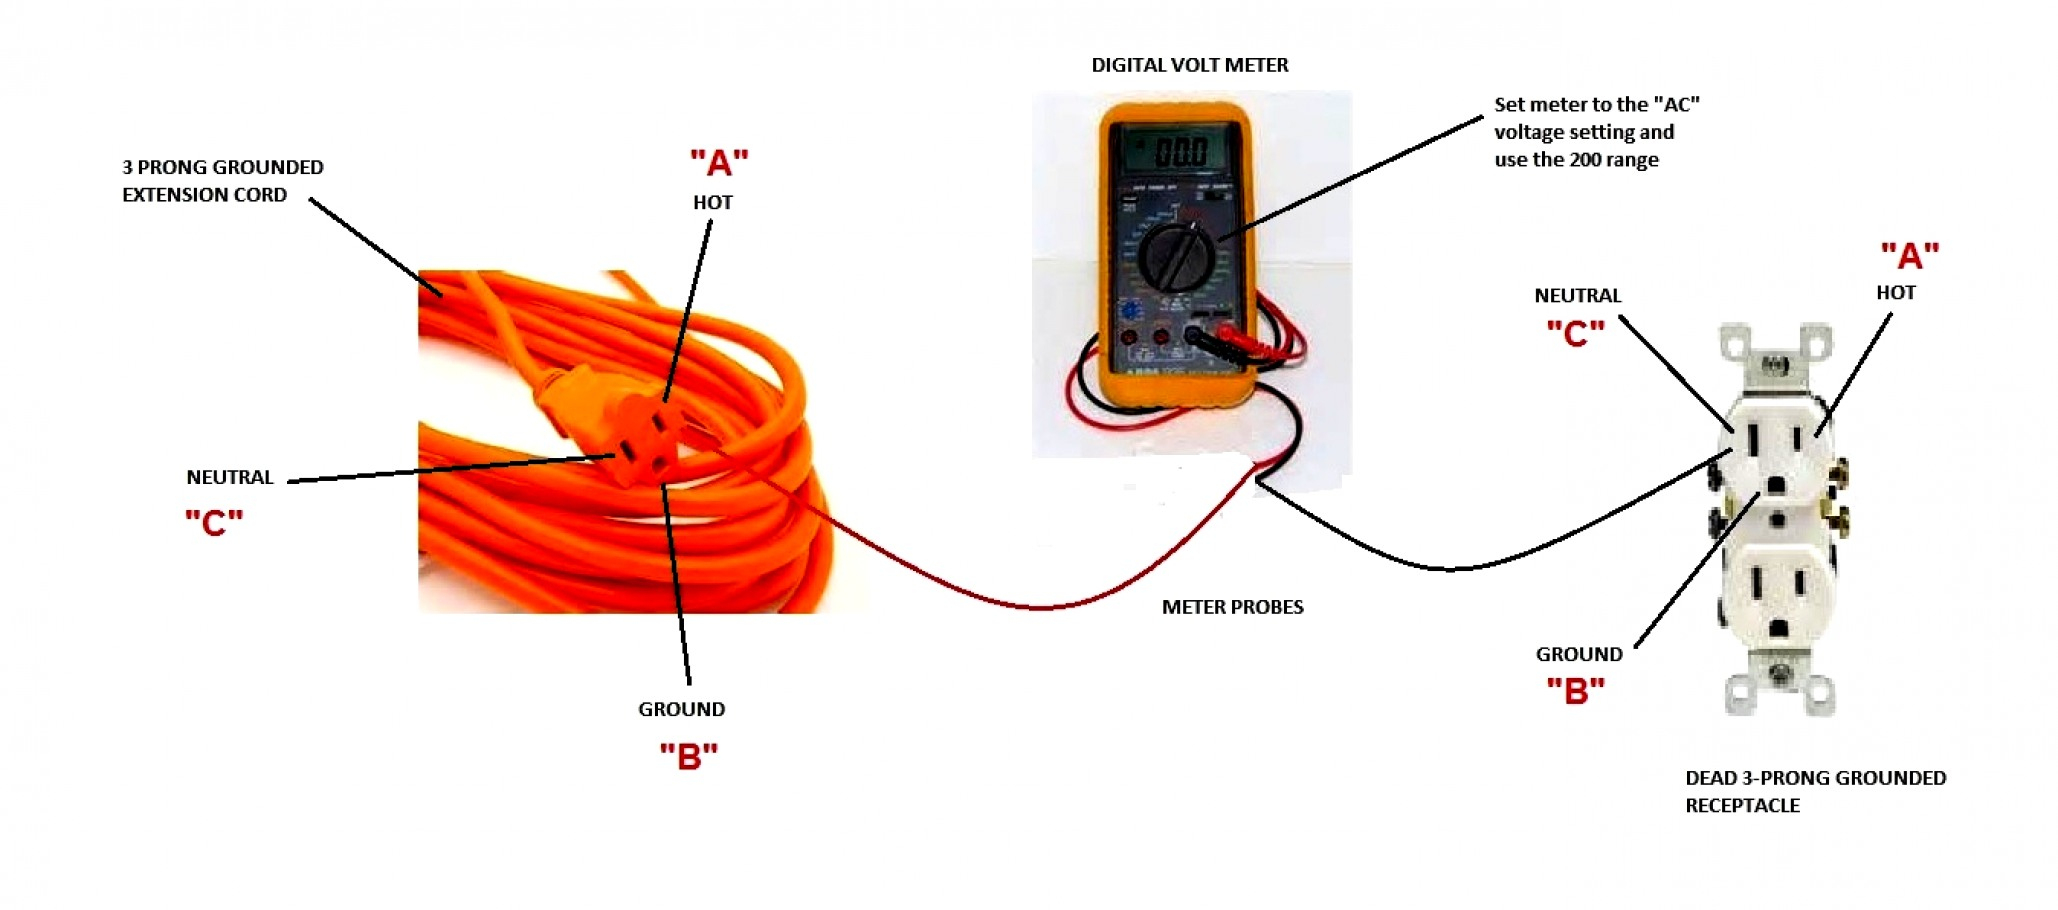 3 Prong Extension Cord Wiring Diagram Bryant Wiring Diagram Begeboy Wiring Diagram Source